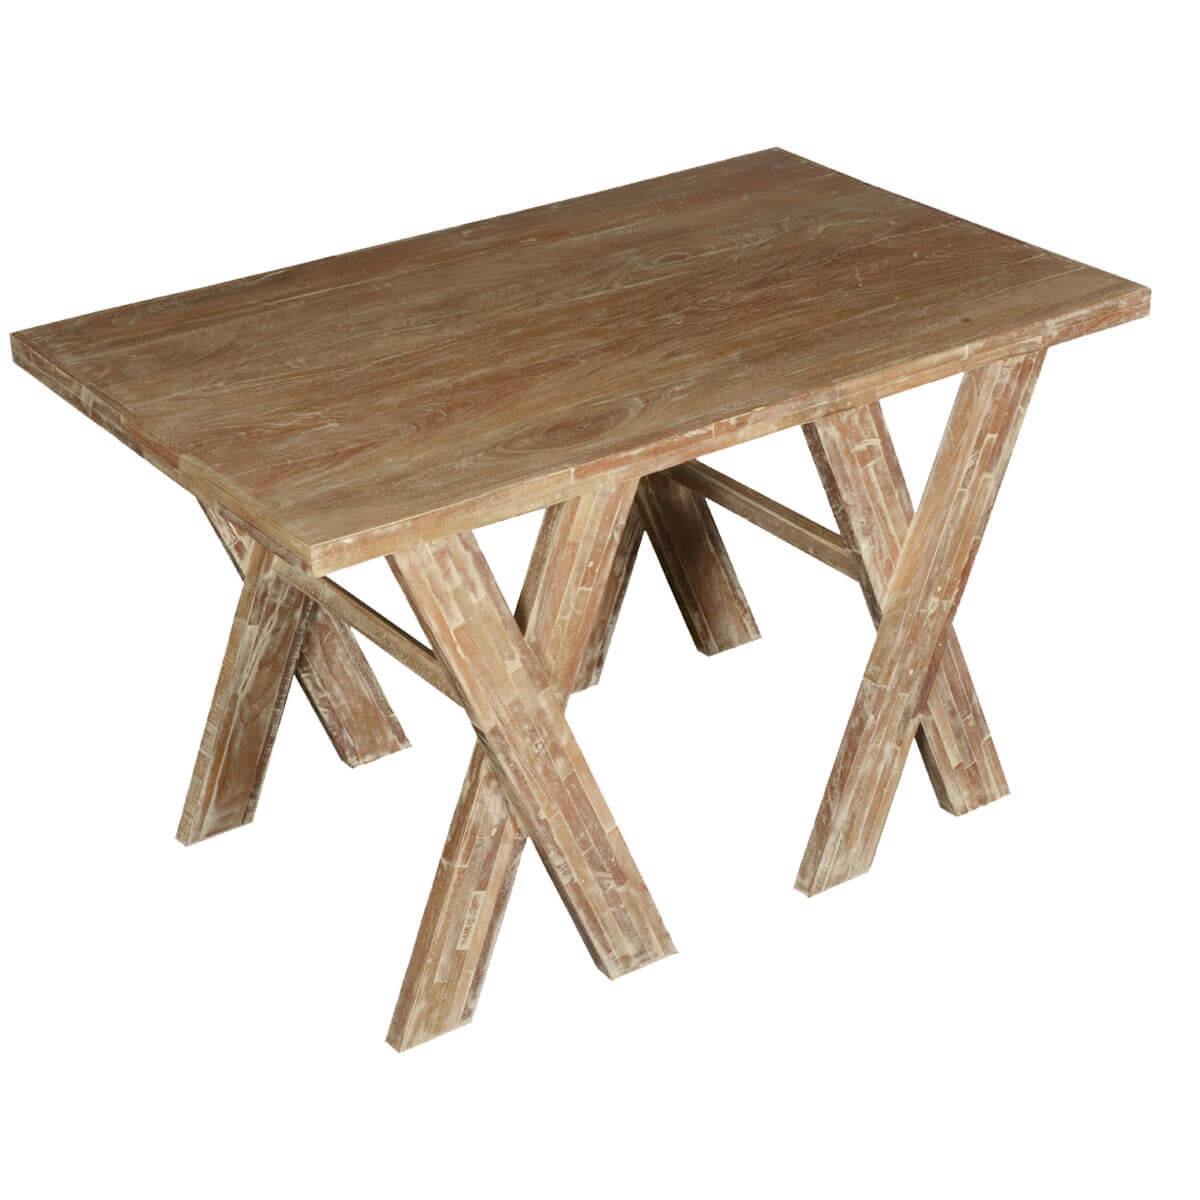 double x acacia mango wood picnic style rustic dining table